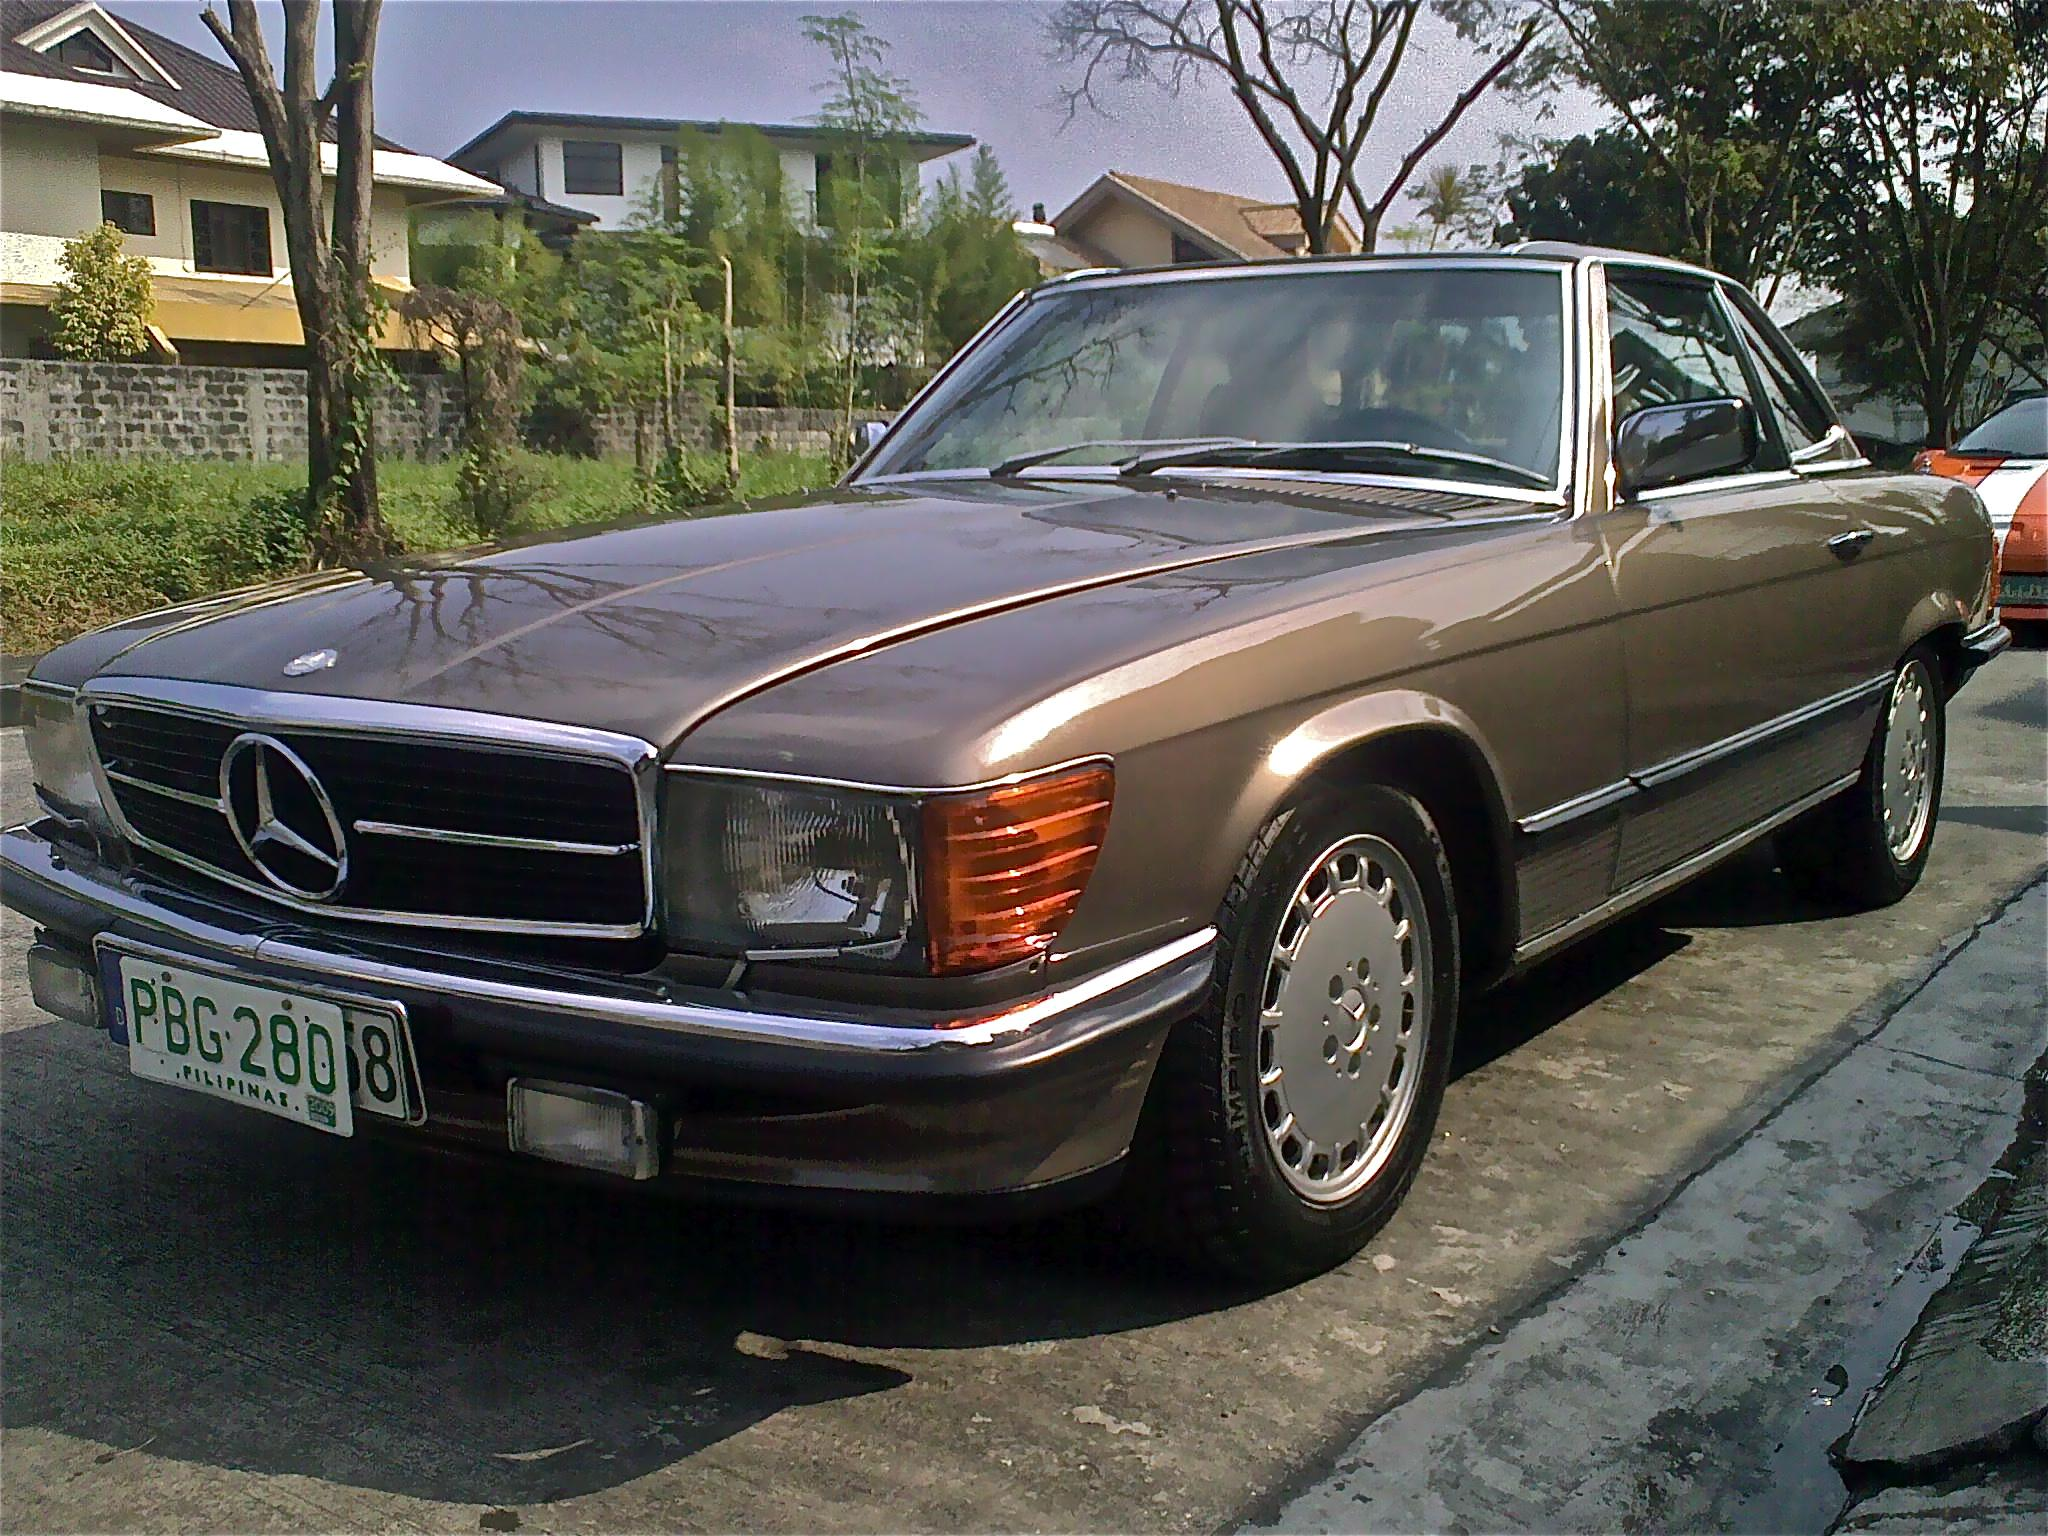 amrider 1989 mercedes benz 560sl specs photos